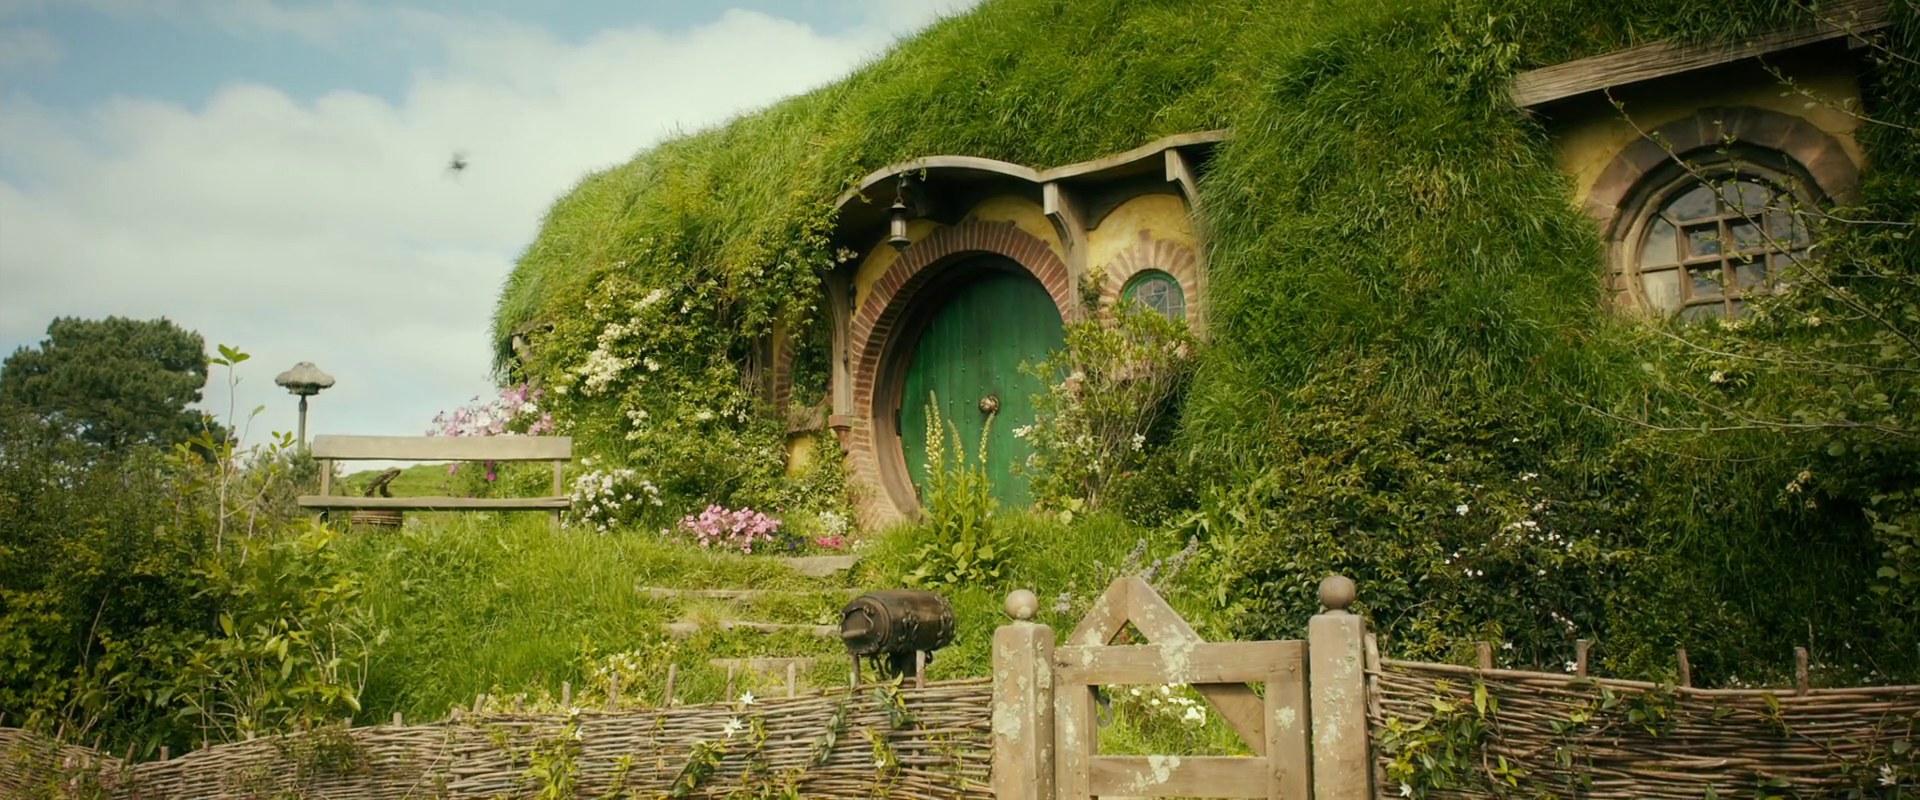 Bag End & Bag End | The One Wiki to Rule Them All | FANDOM powered by Wikia